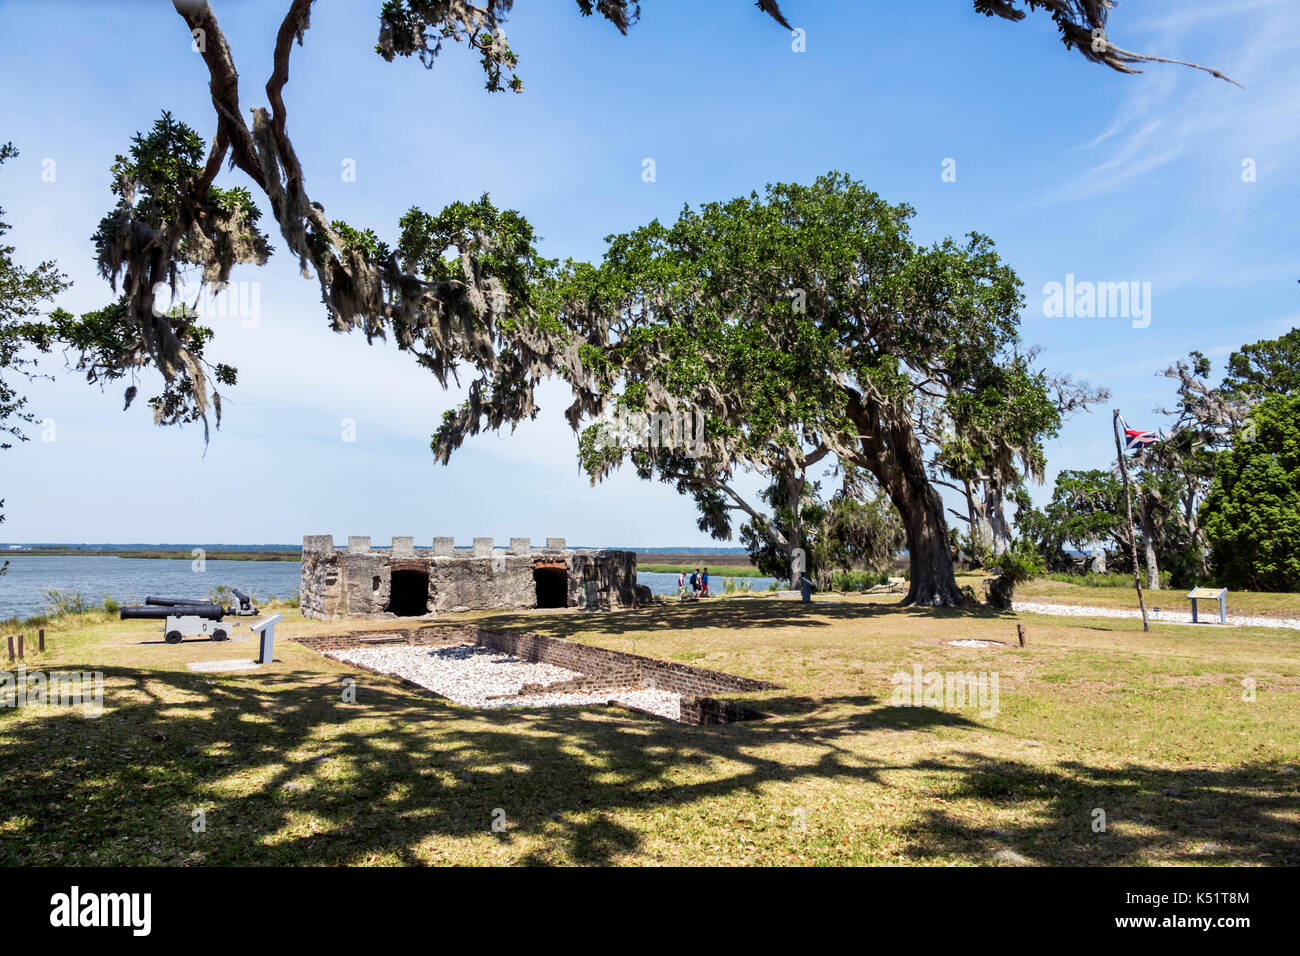 St. Saint Simons Island Georgia National Park Service Fort Frederica National Monument archaeological site ruins - Stock Image